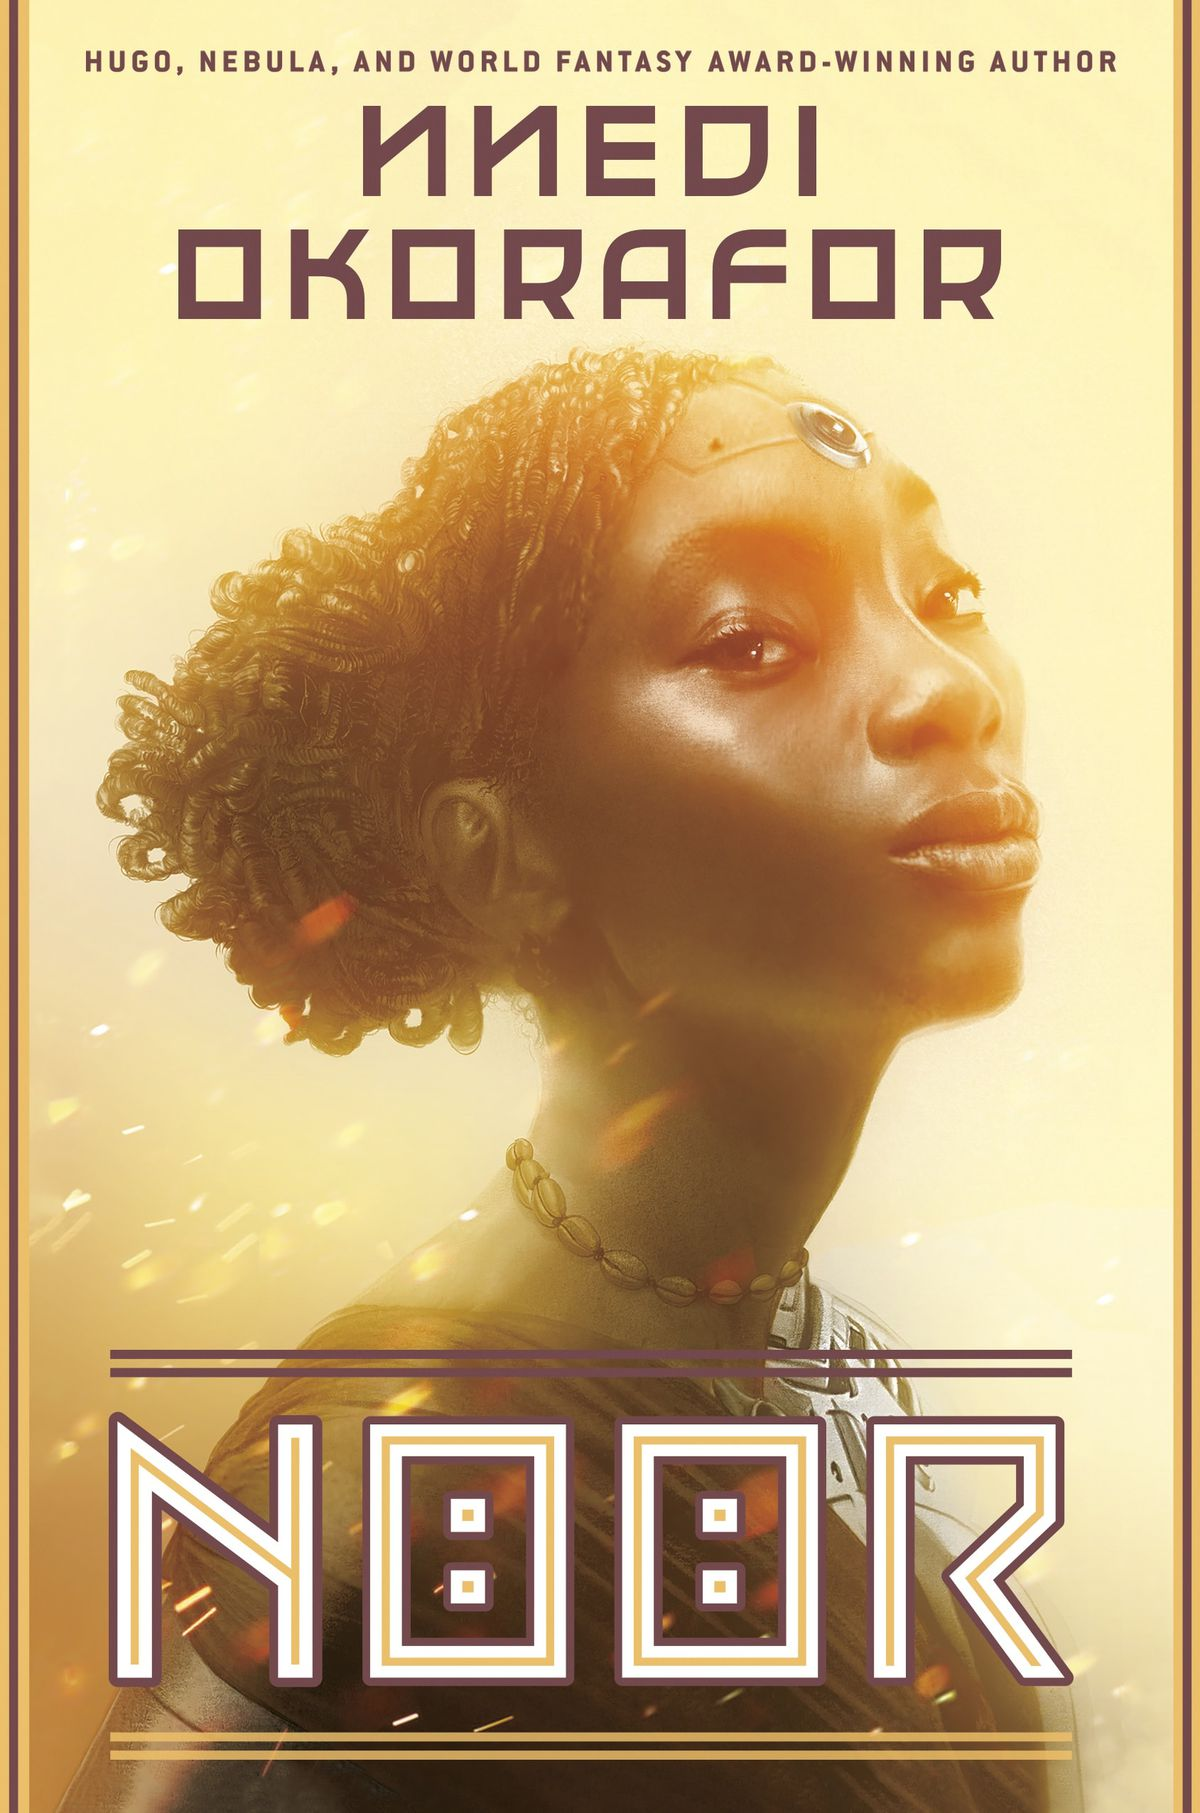 Noor by Nnedi Okorafor book cover featuring a young black woman in ornate jewelry